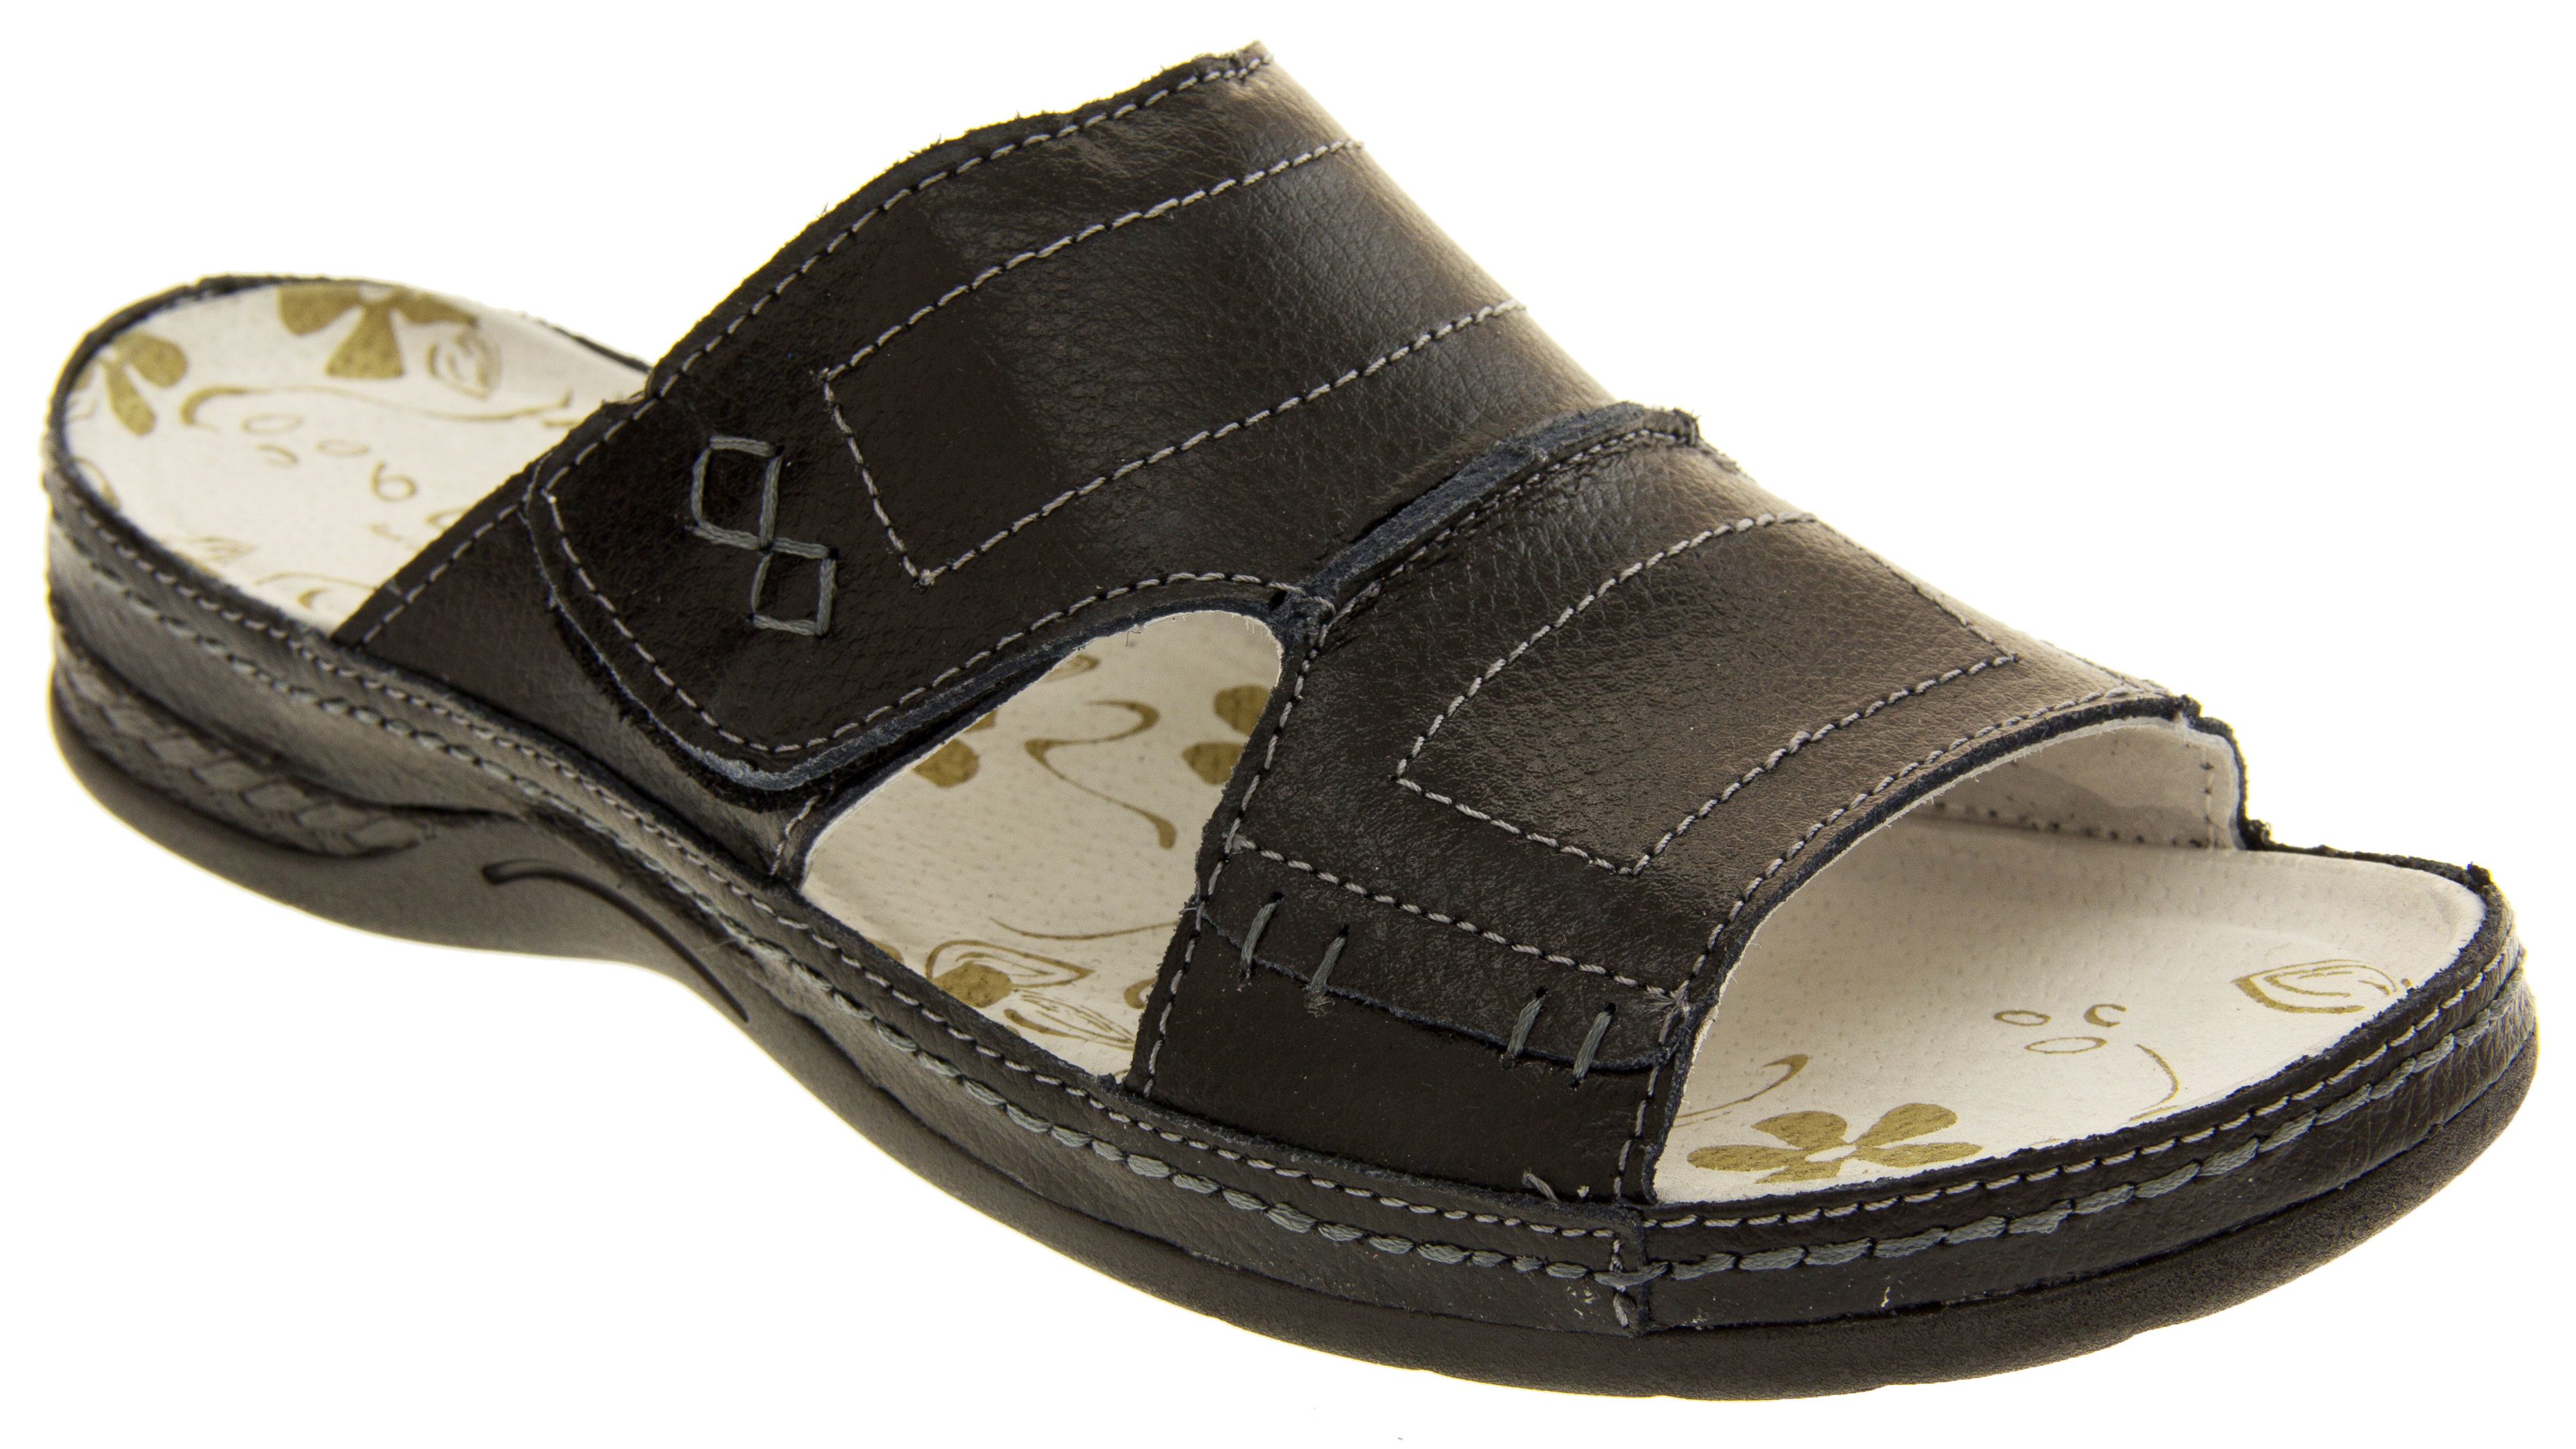 Free shipping BOTH ways on womens sandals with velcro straps, from our vast selection of styles. Fast delivery, and 24/7/ real-person service with a smile. Click or call